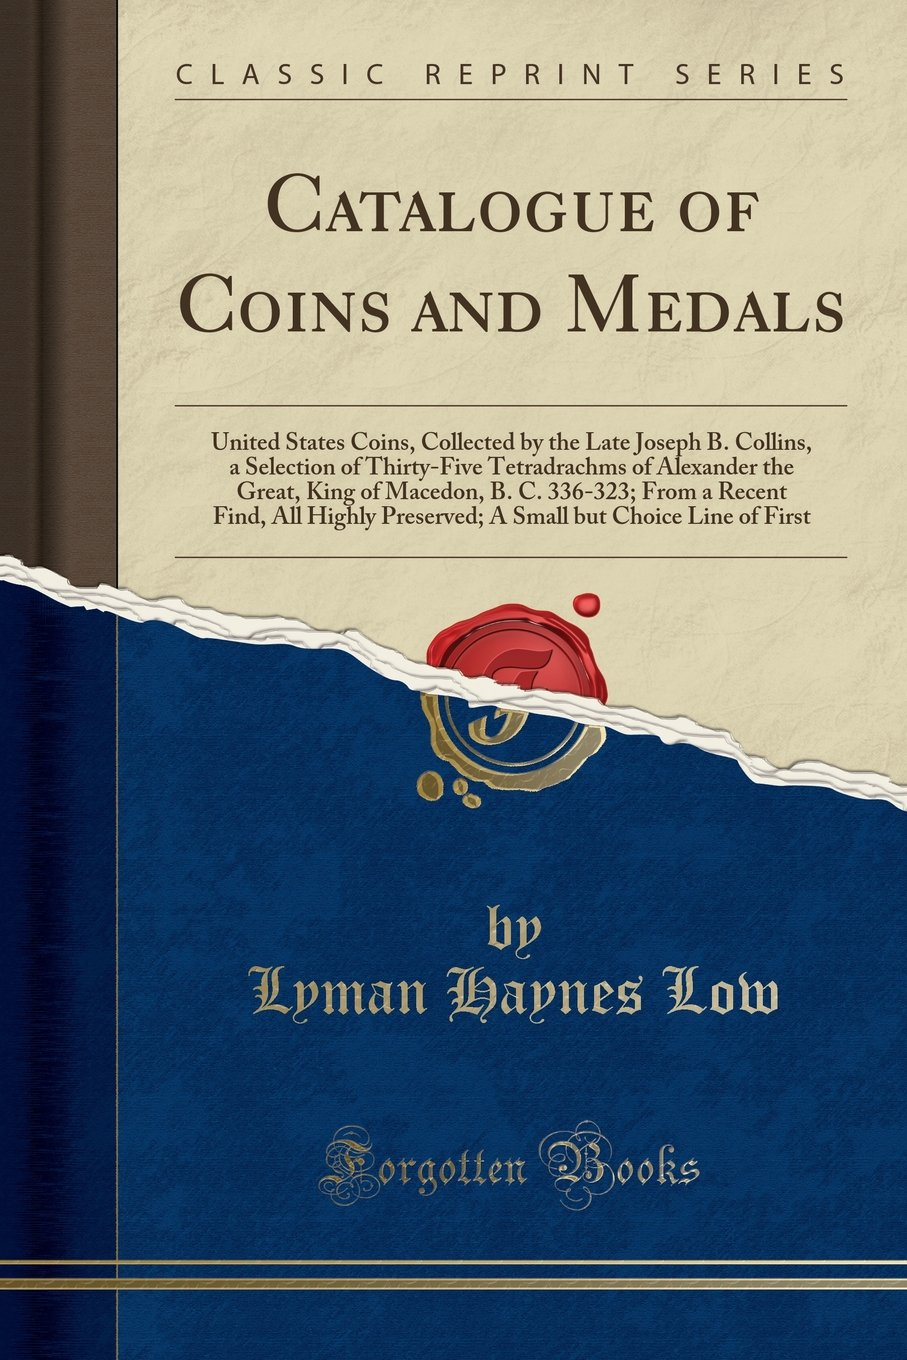 Catalogue of Coins and Medals: United States Coins, Collected by the Late Joseph B. Collins, a Selection of Thirty-Five Tetradrachms of Alexander the ... All Highly Preserved; A Small but Choice Line pdf